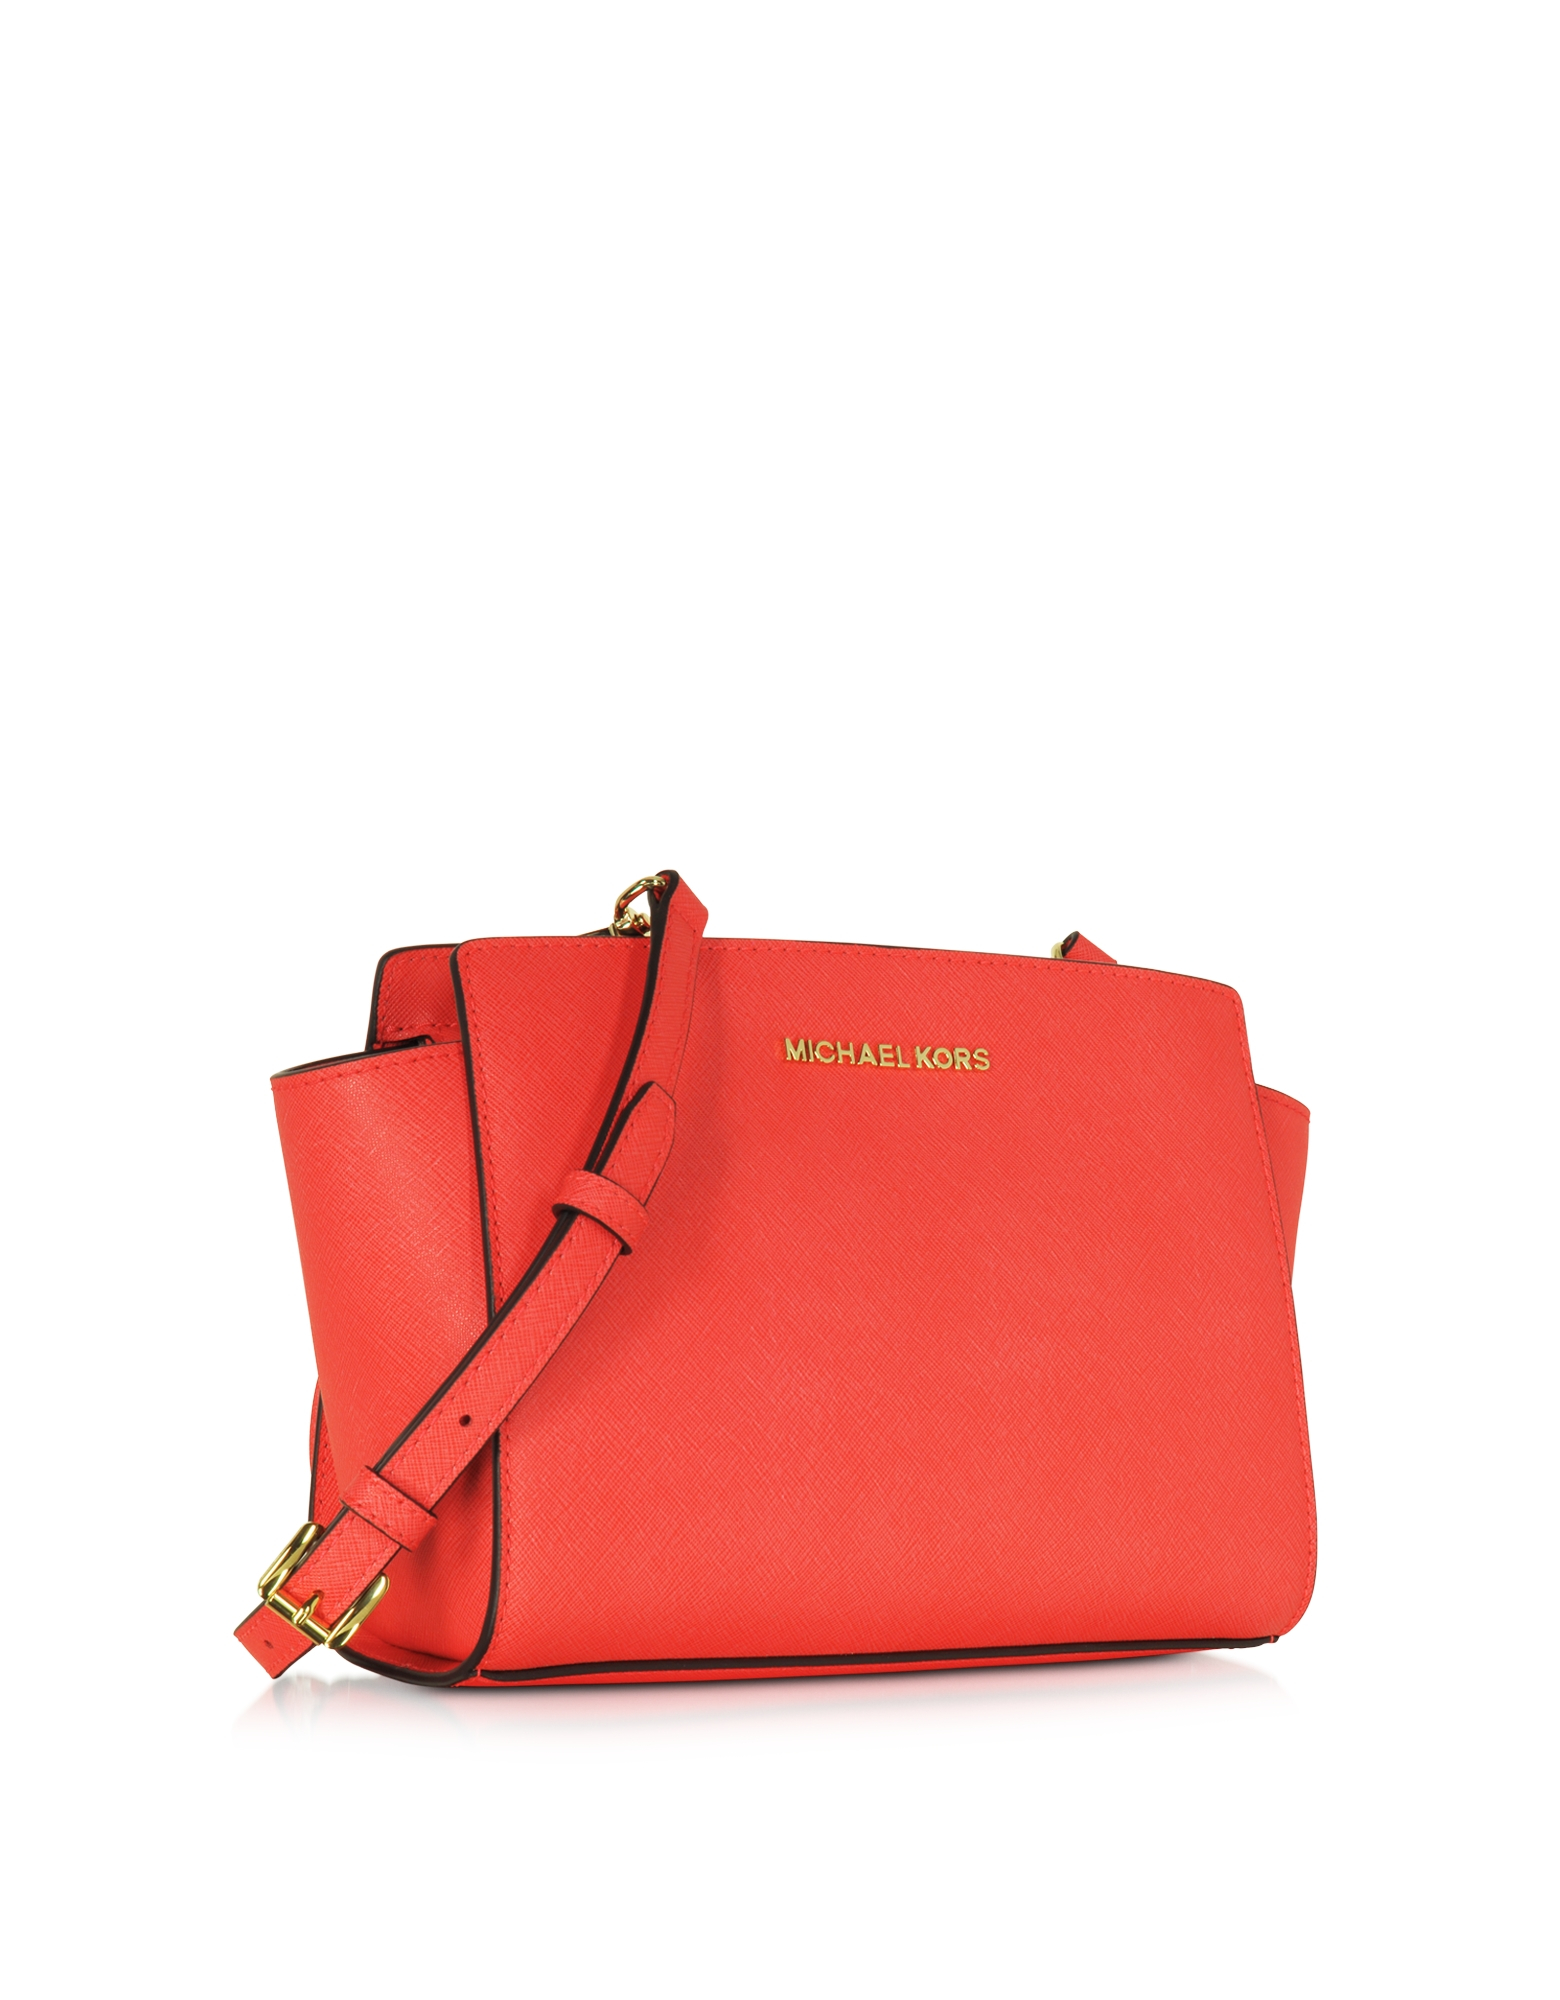 38b71661757b ... promo code for michael kors selma medium coral reef saffiano leather  messenger bag 51b36 25325